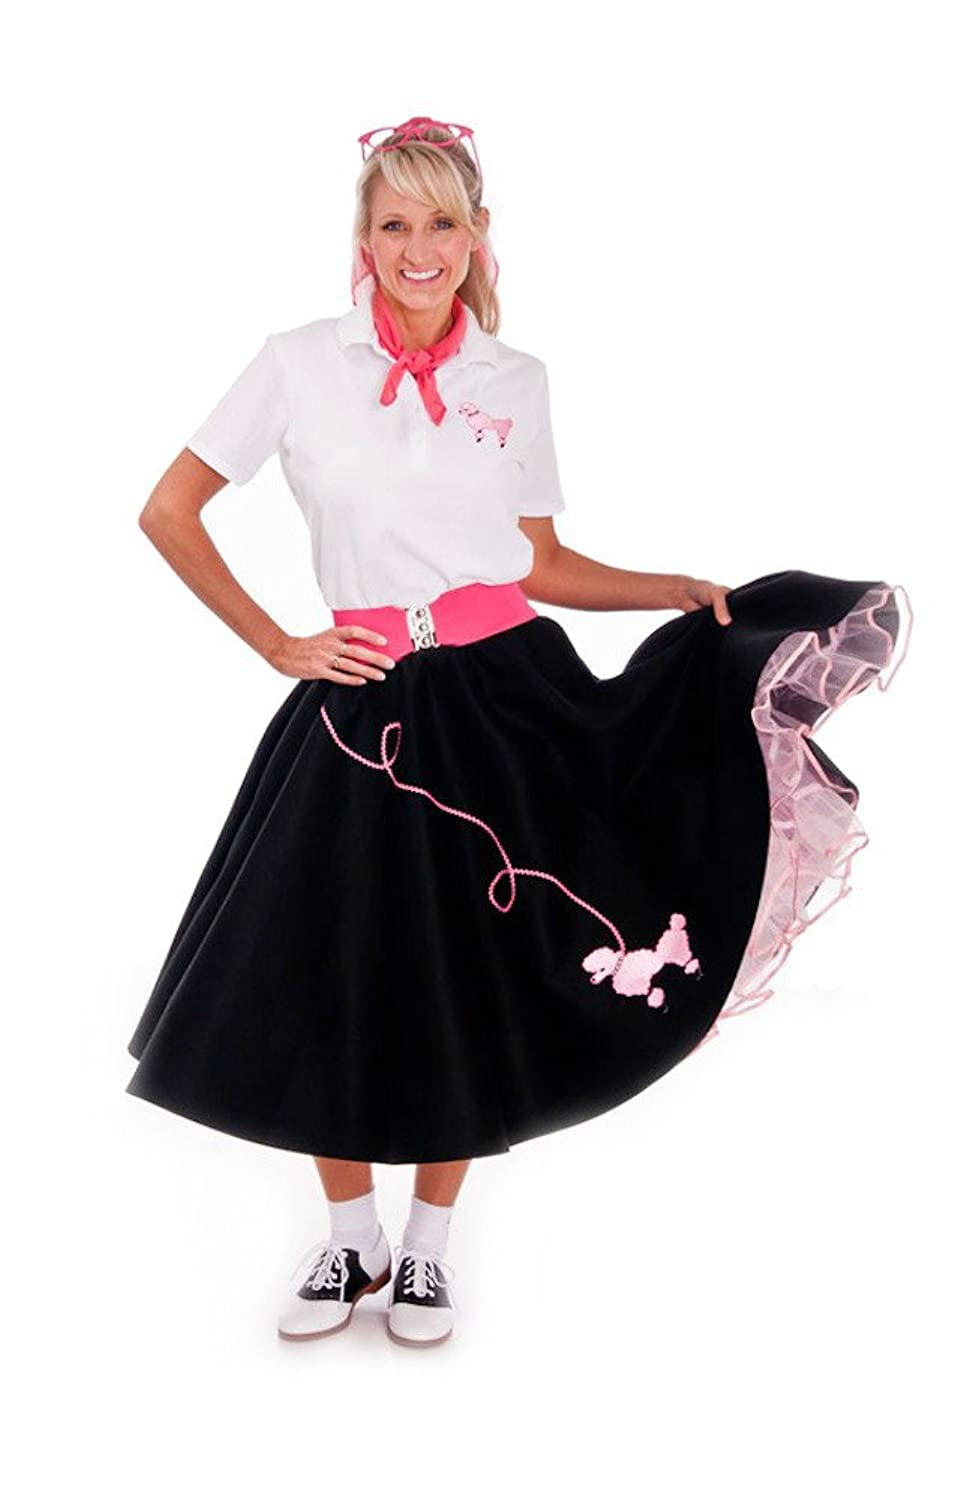 Authentic Poodle Skirt